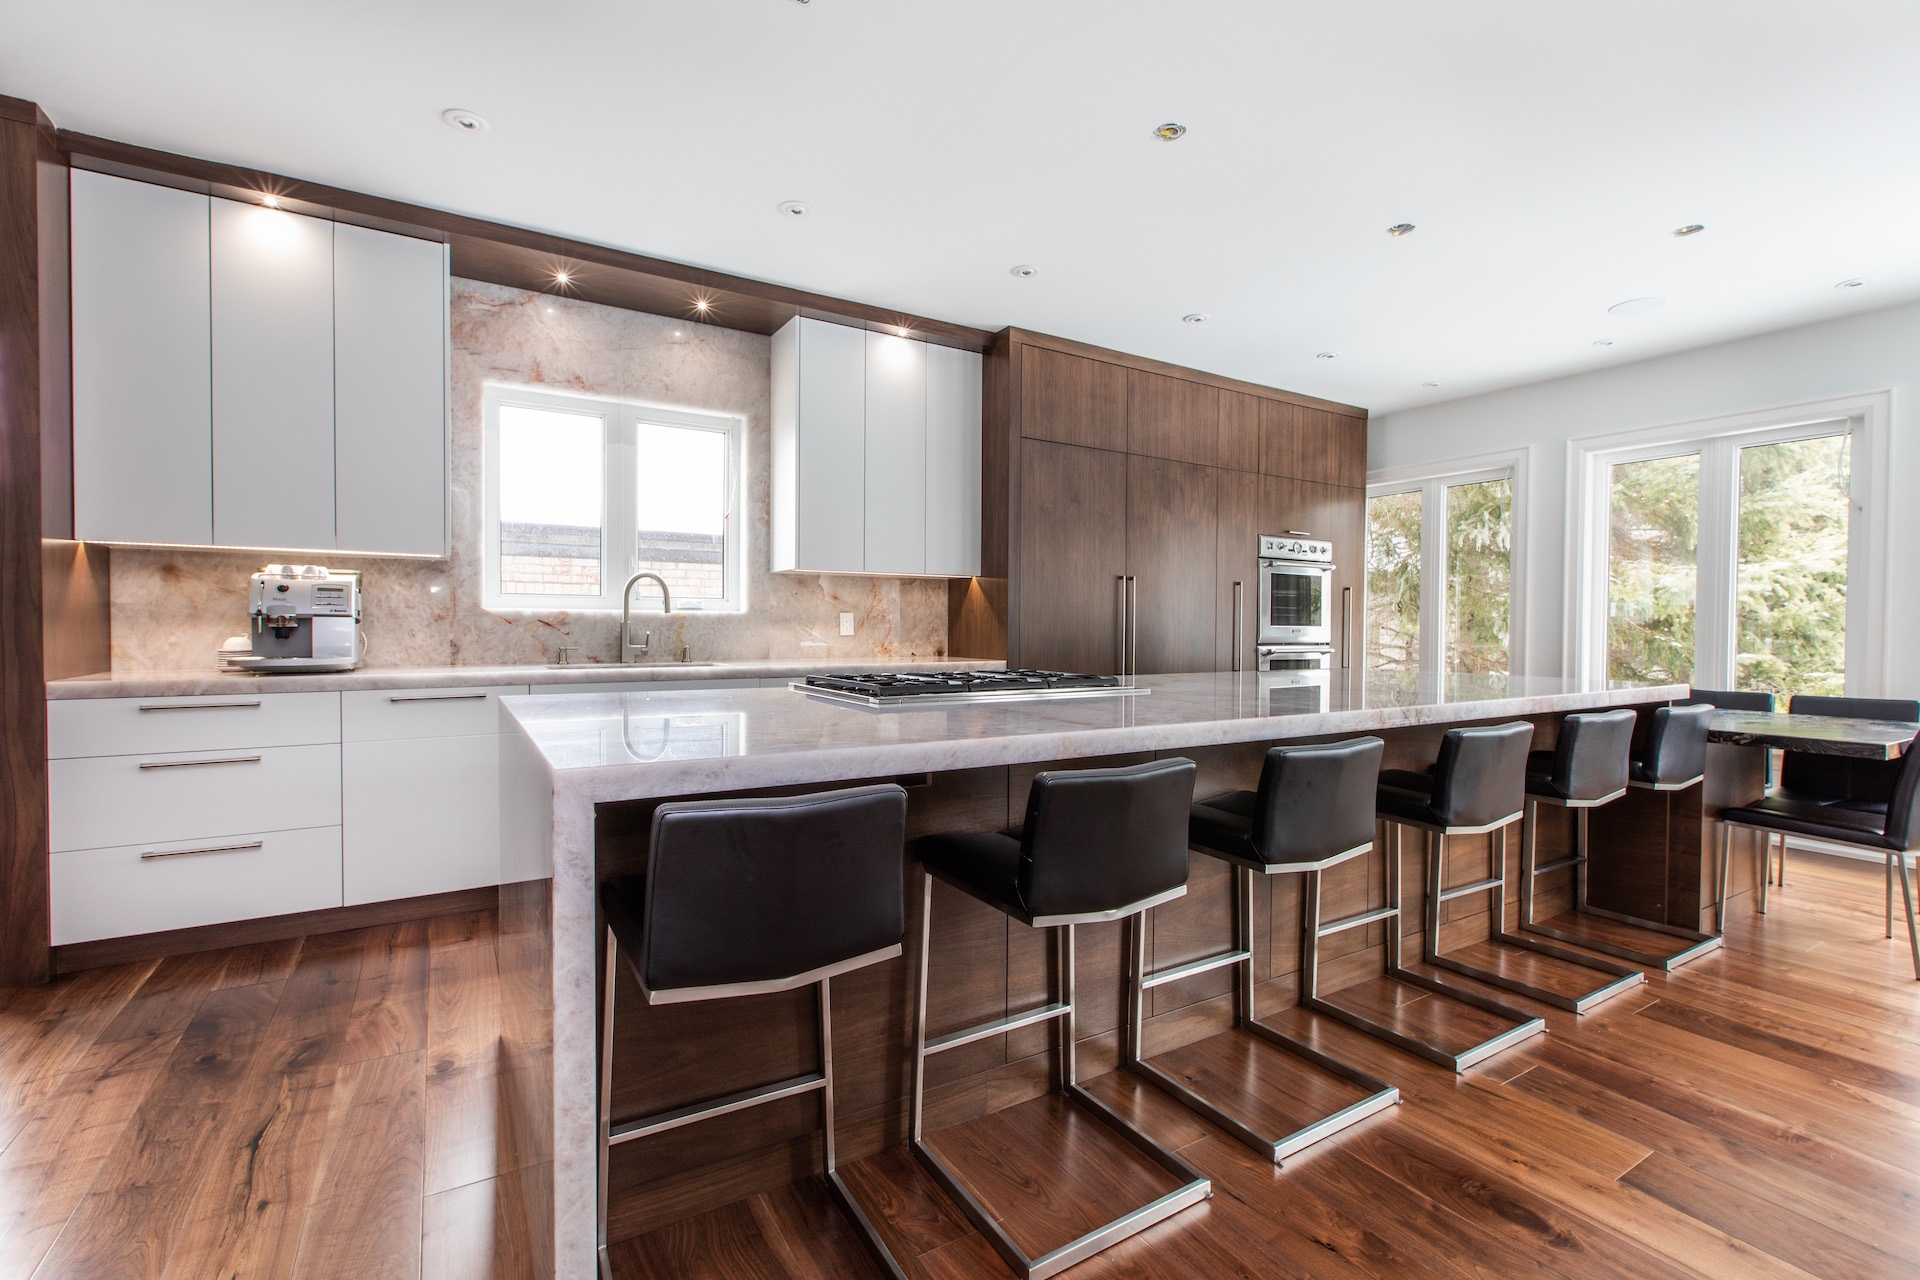 Kitchen with black bar stools